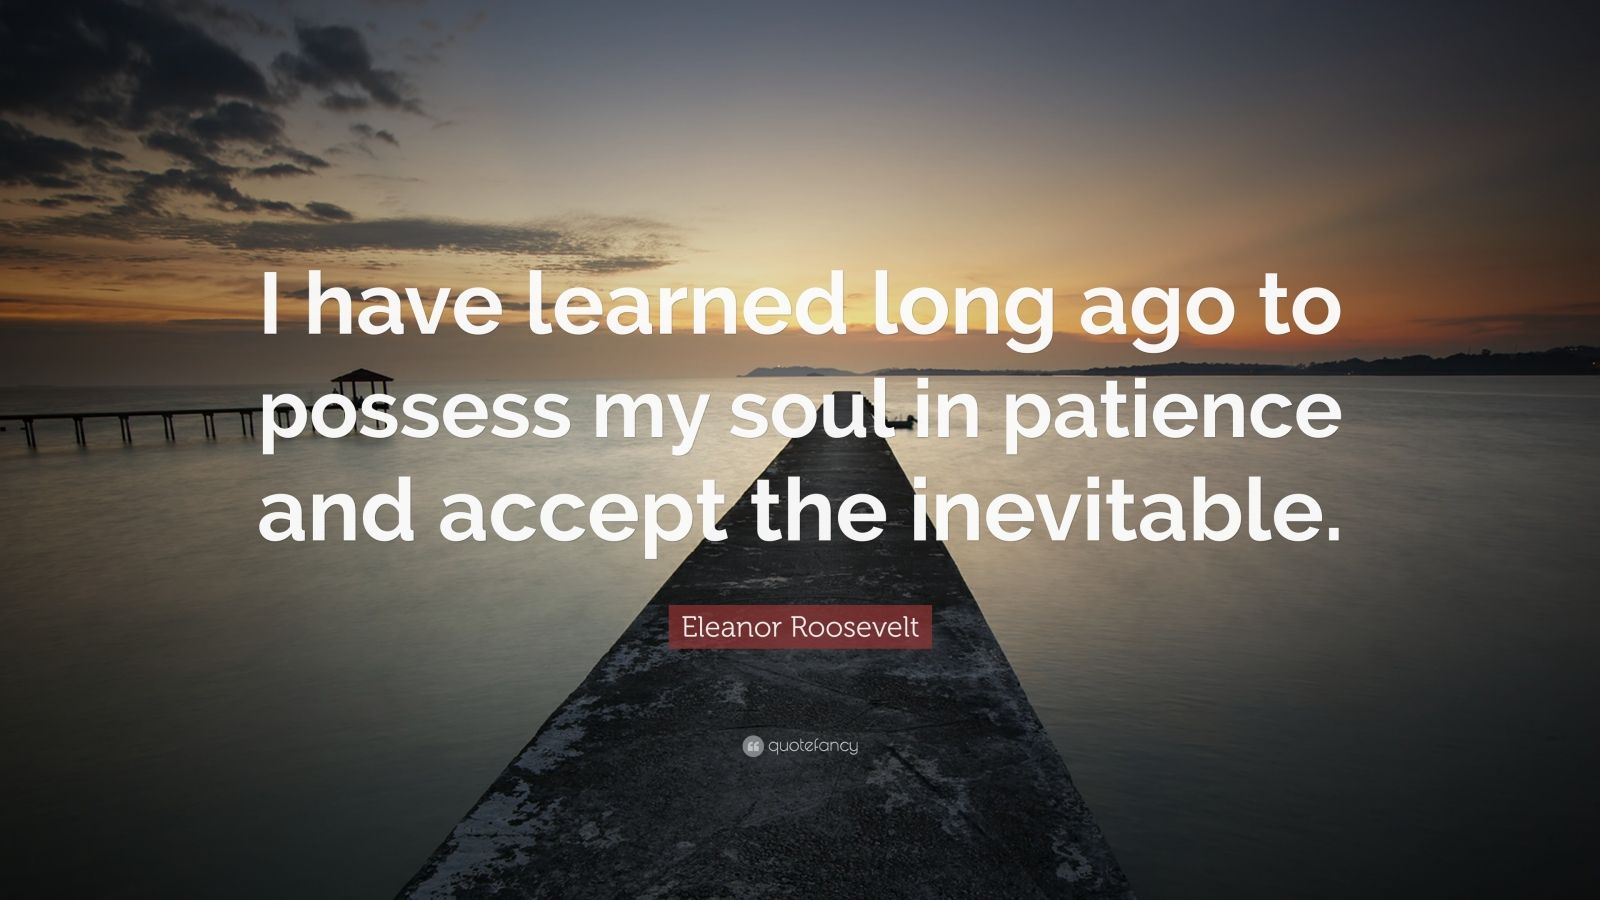 """Eleanor Roosevelt Quote: """"I have learned long ago to possess my soul in patience and accept the inevitable."""""""